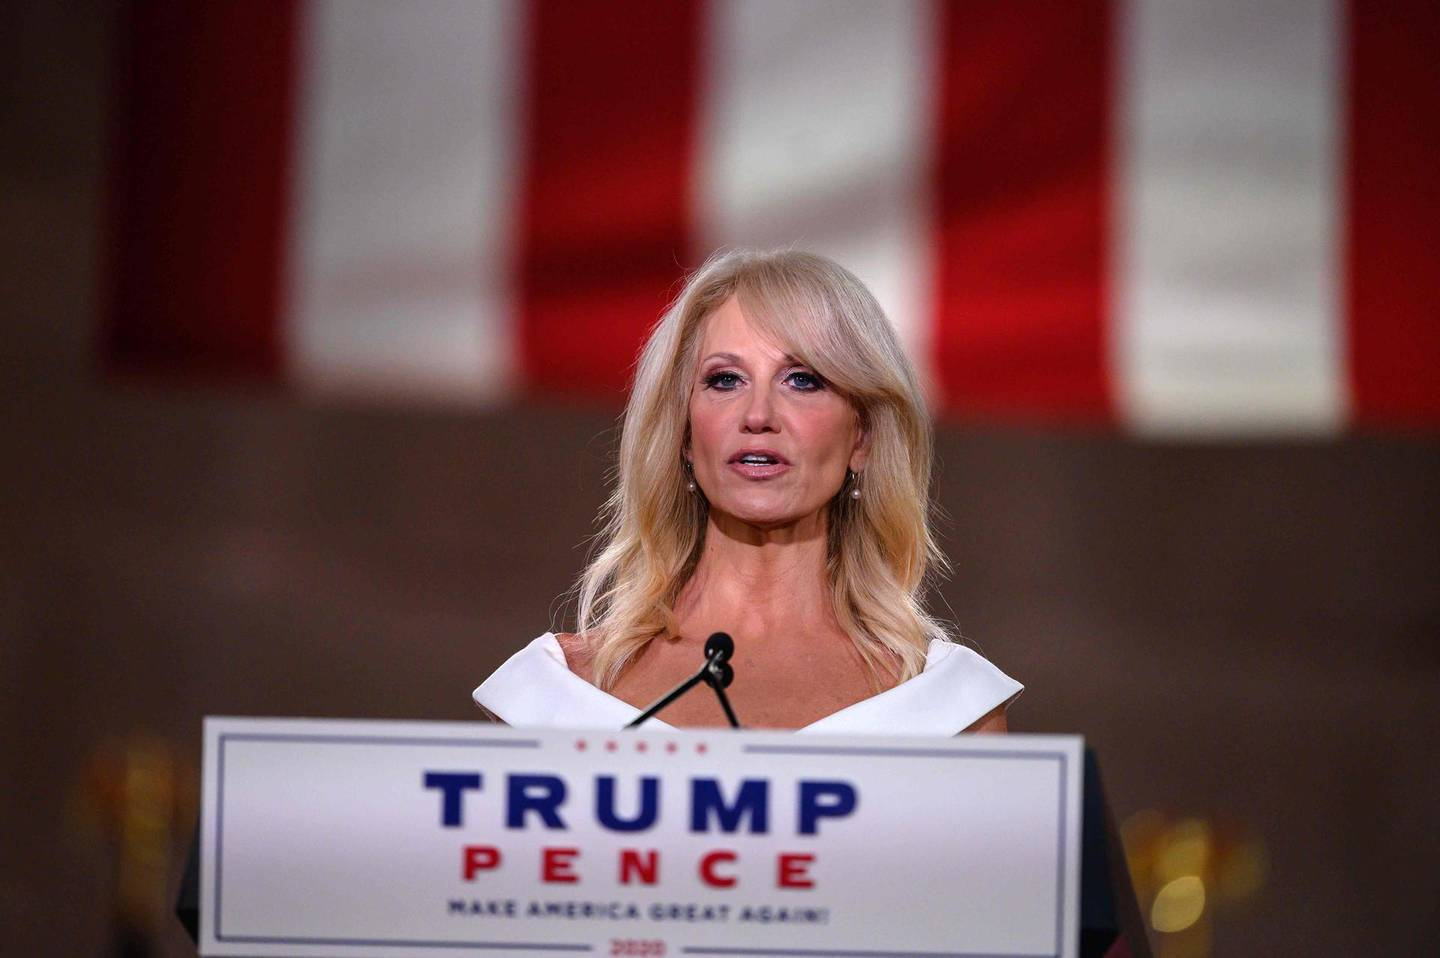 """(FILES) In this file photo taken on August 26, 2020 outgoing Counselor to US President Donald Trump, Kellyanne Conway, addresses the Republican National Convention in a pre-recorded speech at the Andrew W. Mellon Auditorium in Washington, DC, on August 26, 2020. Former Counselor to the US President Kellyanne Conway said on October 2, 2020 that she has tested positive for Covid-19. President Donald Trump was hospitalized on October 2 and given an experimental Covid-19 treatment, but said he was """"well,"""" following bombshell news that the Republican had contracted the virus, knocking him off the campaign trail a month from the US election. / AFP / NICHOLAS KAMM"""